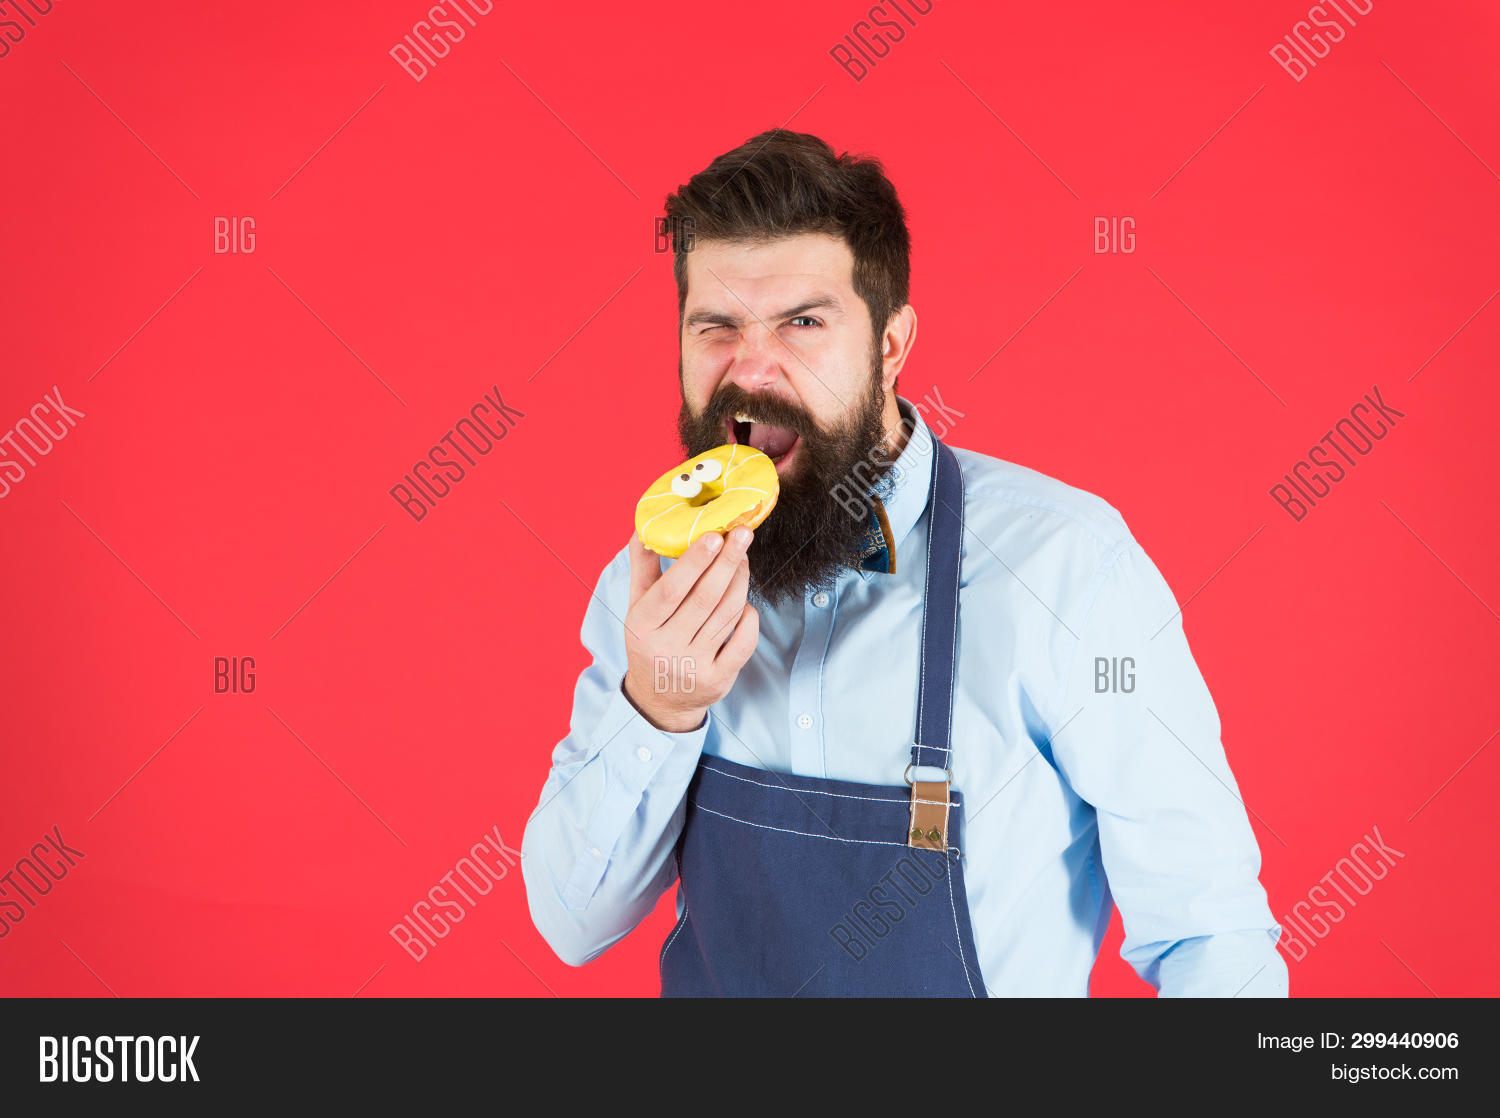 appetite,apron,background,baked,baker,bakery,bearded,bite,bread,cafe,calorie,caucasian,chef,concept,cook,cookery,cooking,cuisine,culinary,cute,dessert,donut,eat,from,glazed,guy,handsome,hipster,hold,hunger,kitchen,look,man,nutrition,red,reduce,restaurant,sweet,to,try,ways,work